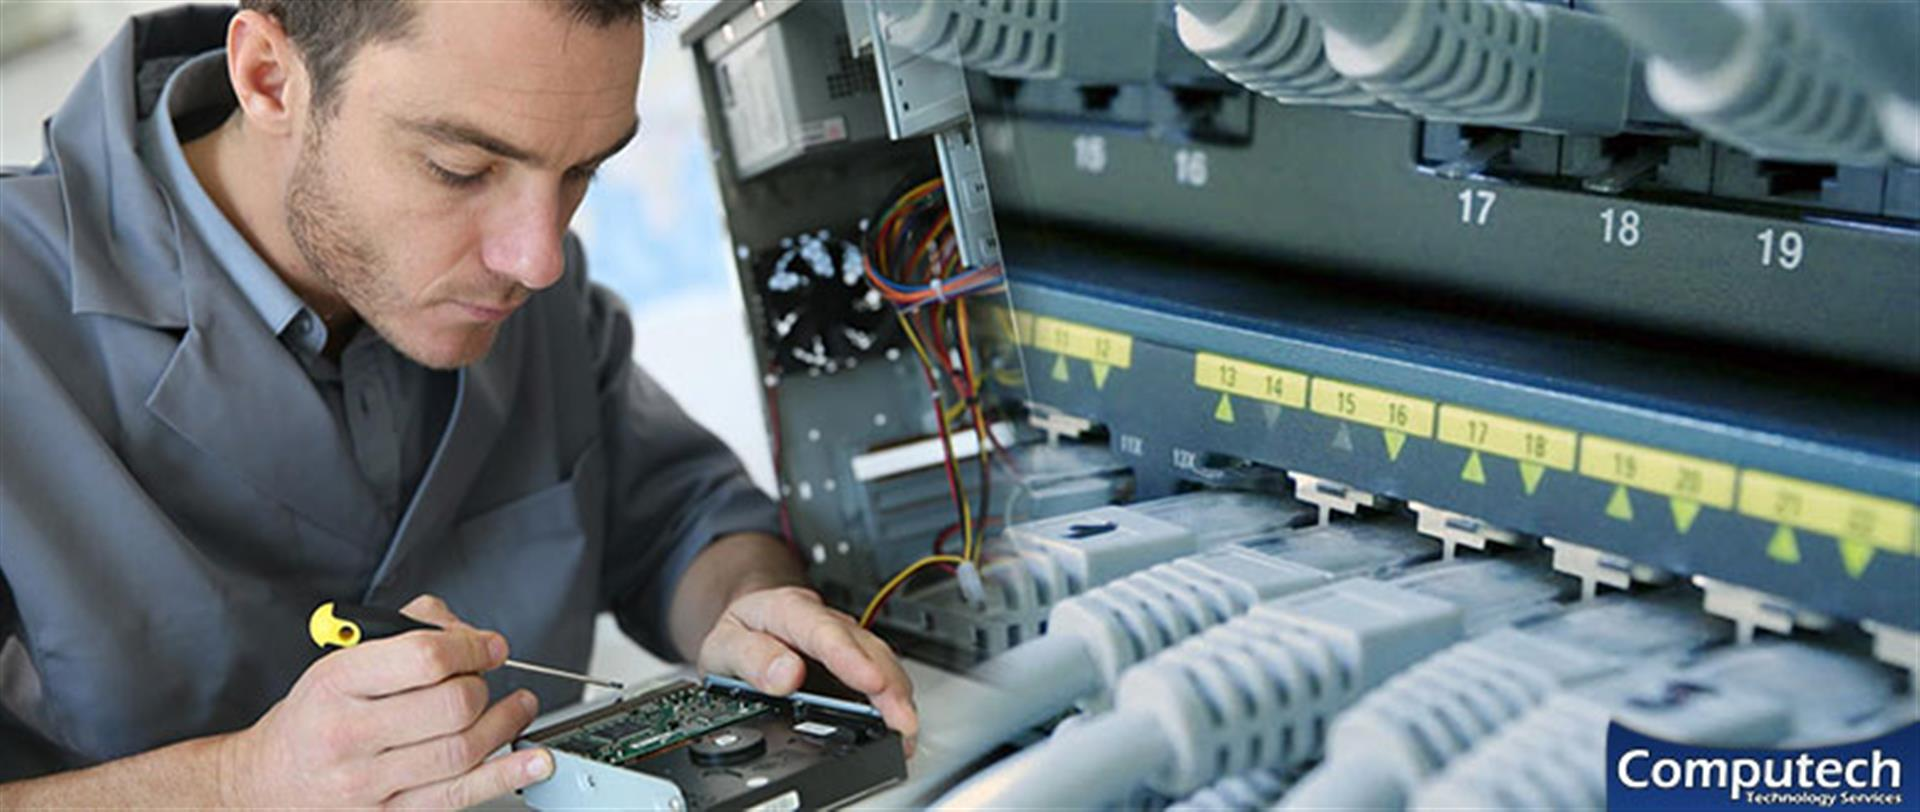 Tucson Arizona Onsite Computer & Printer Repairs, Networks, Telecom and High Speed Data Wiring Solutions